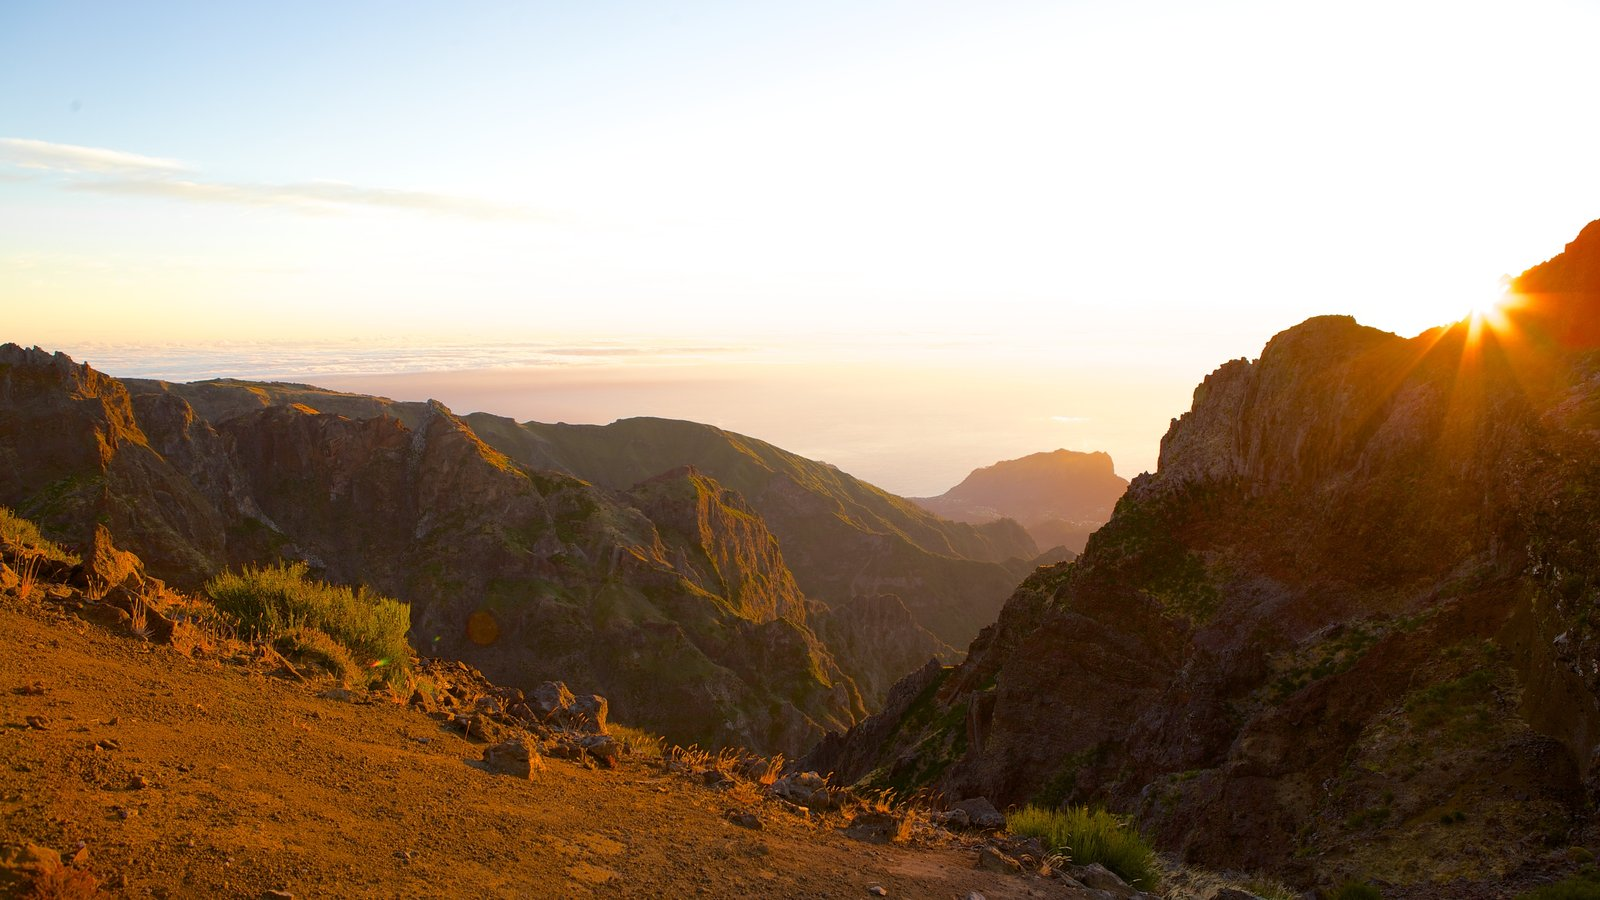 Pico do Ariero featuring a sunset and mountains